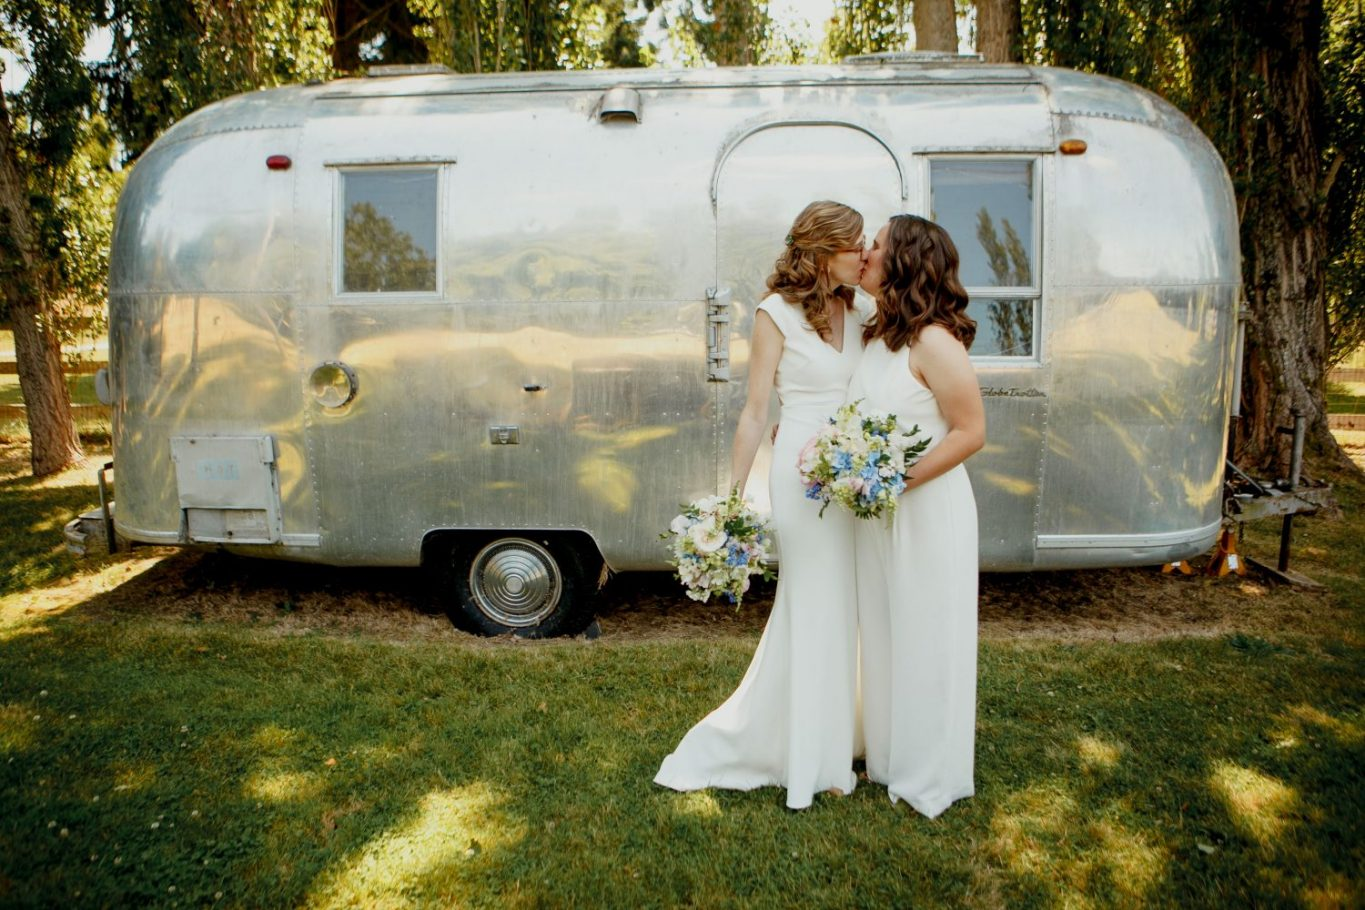 Whidbey-island-wedding-celebration-airstream-trailer